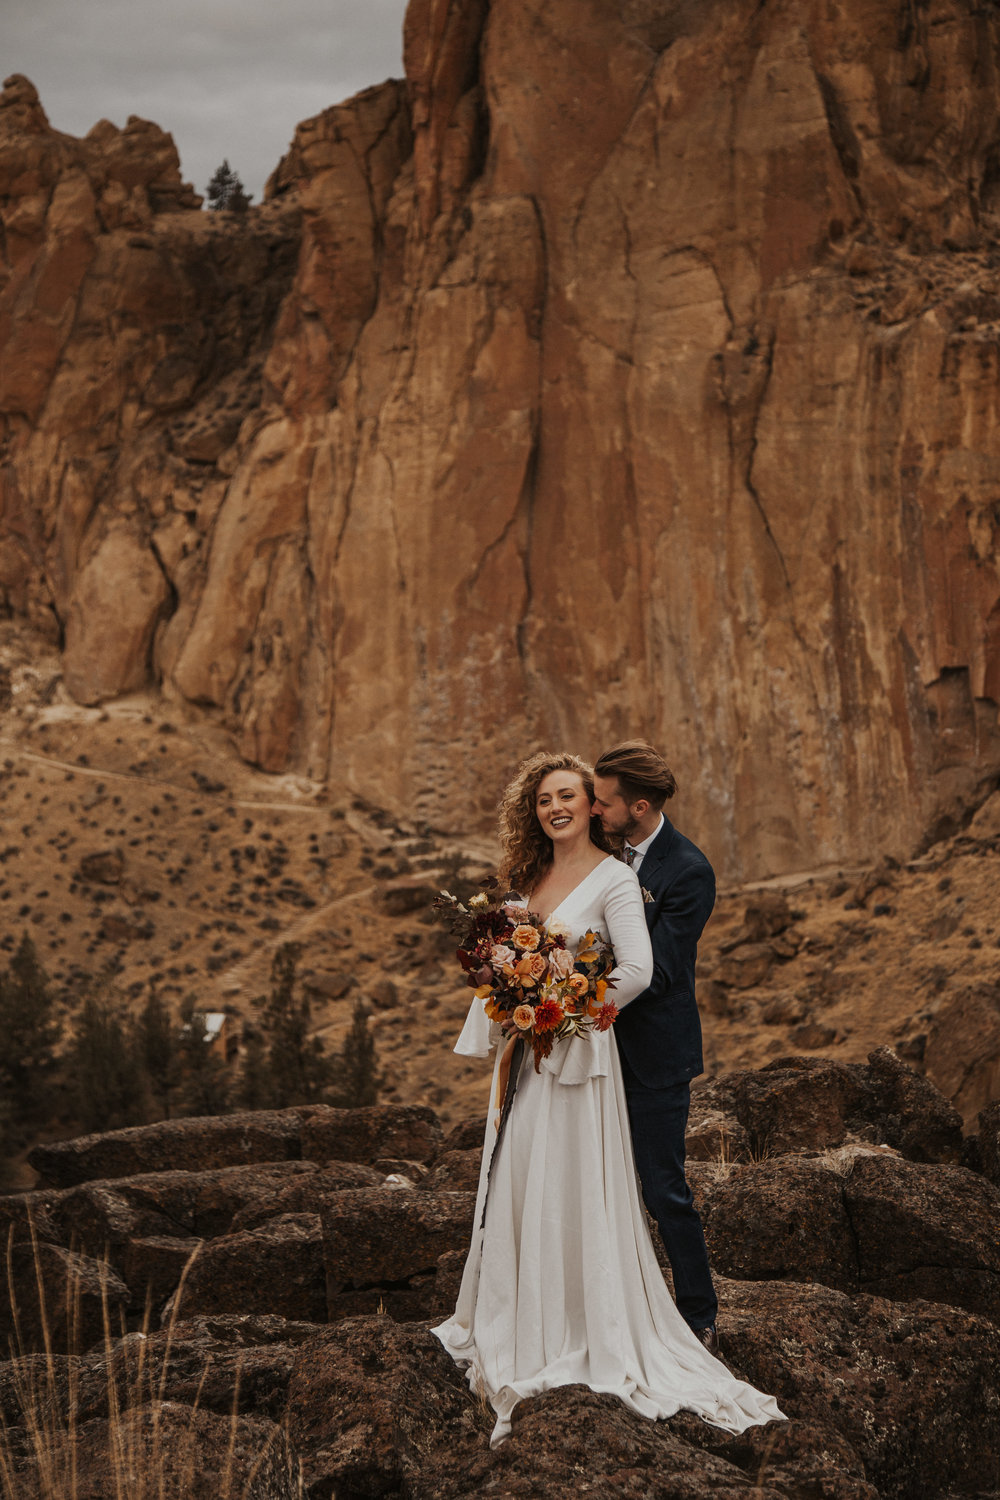 August-muse-images-smith-rock-elopement-oregon-bri-dylan-16.jpg